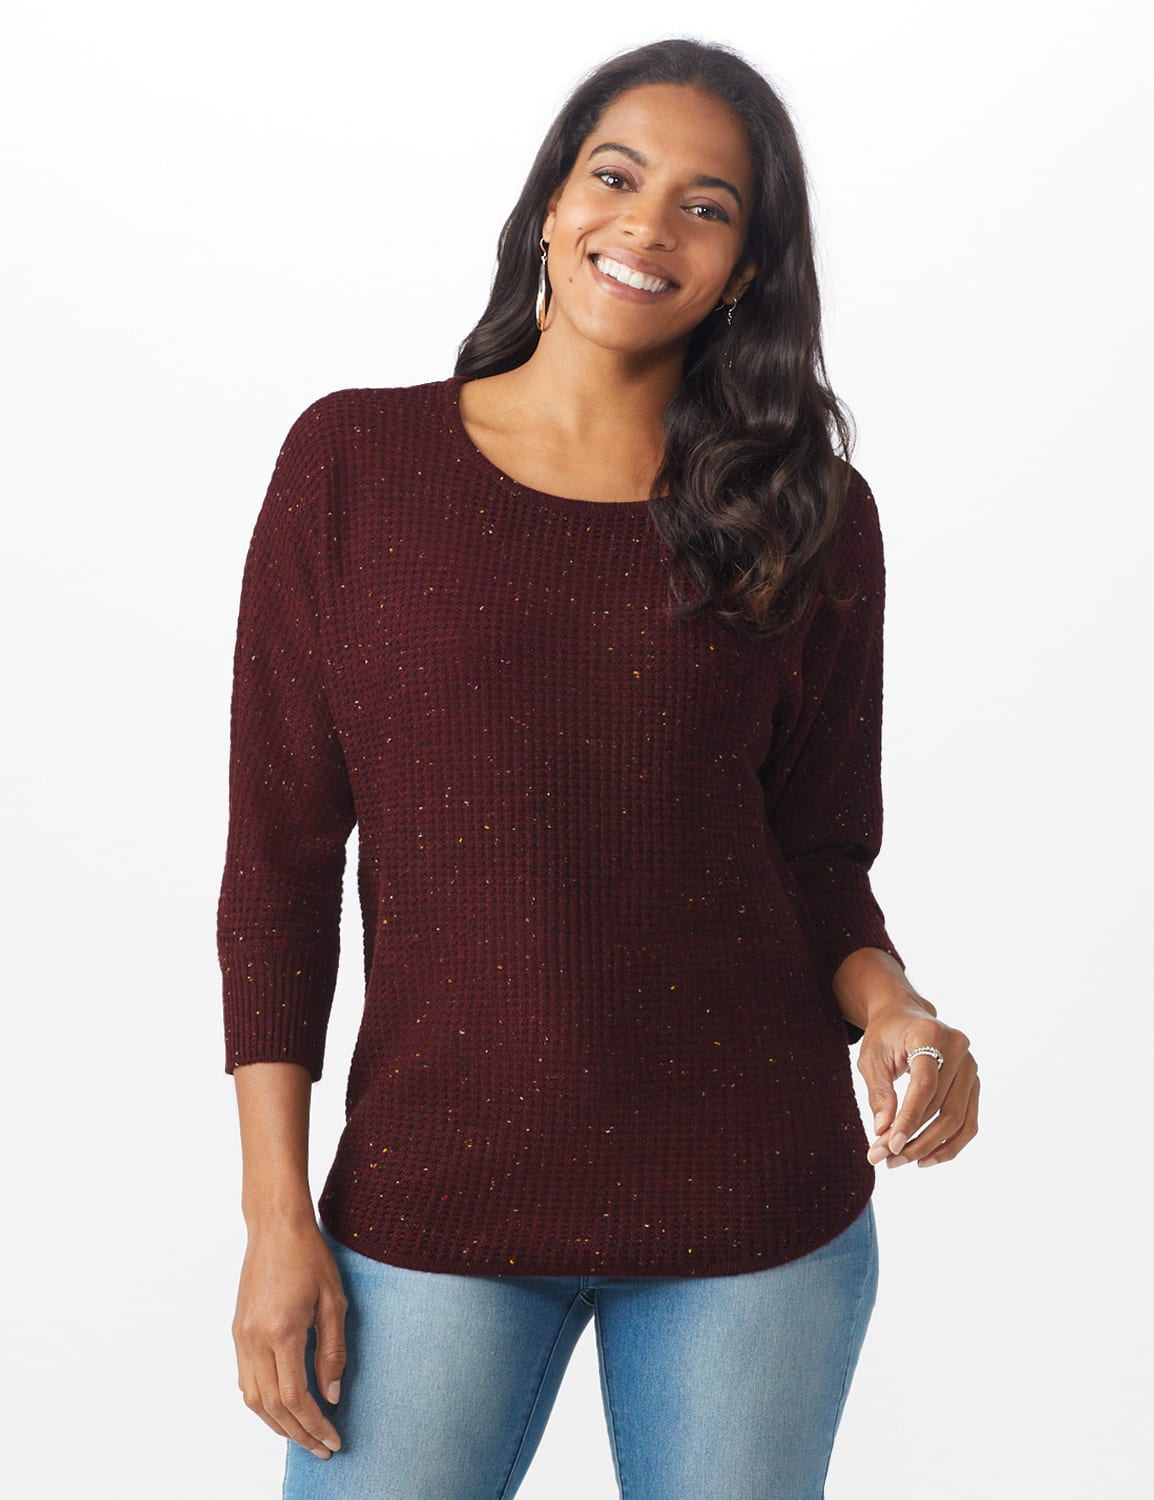 Westport Thermal Stitch Curved Hem Sweater - Misses - Florentine - Front